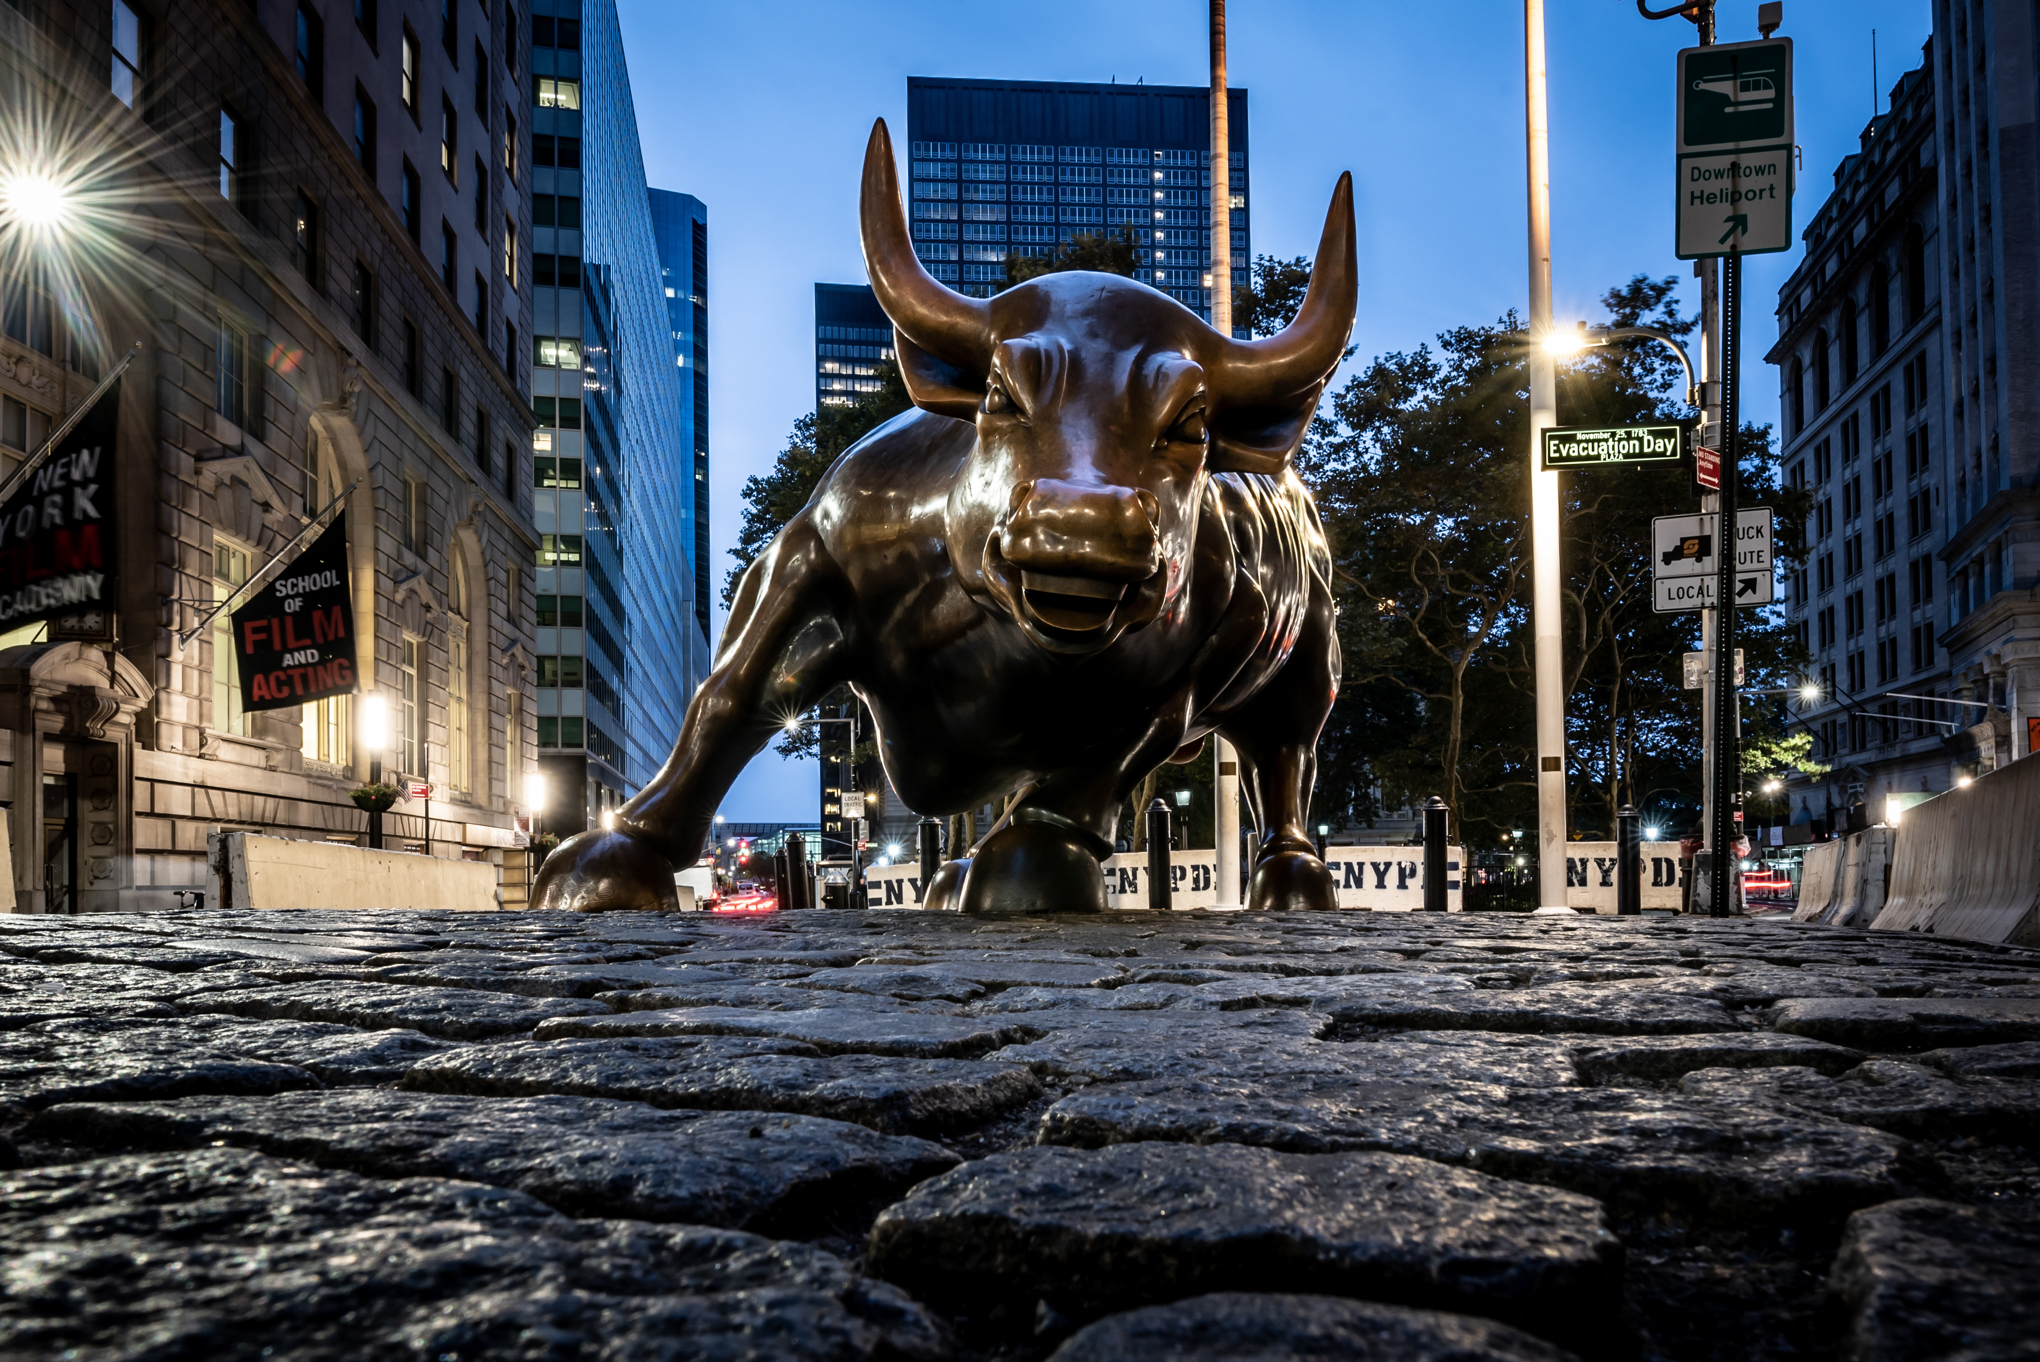 Wall Street Bull After Hours